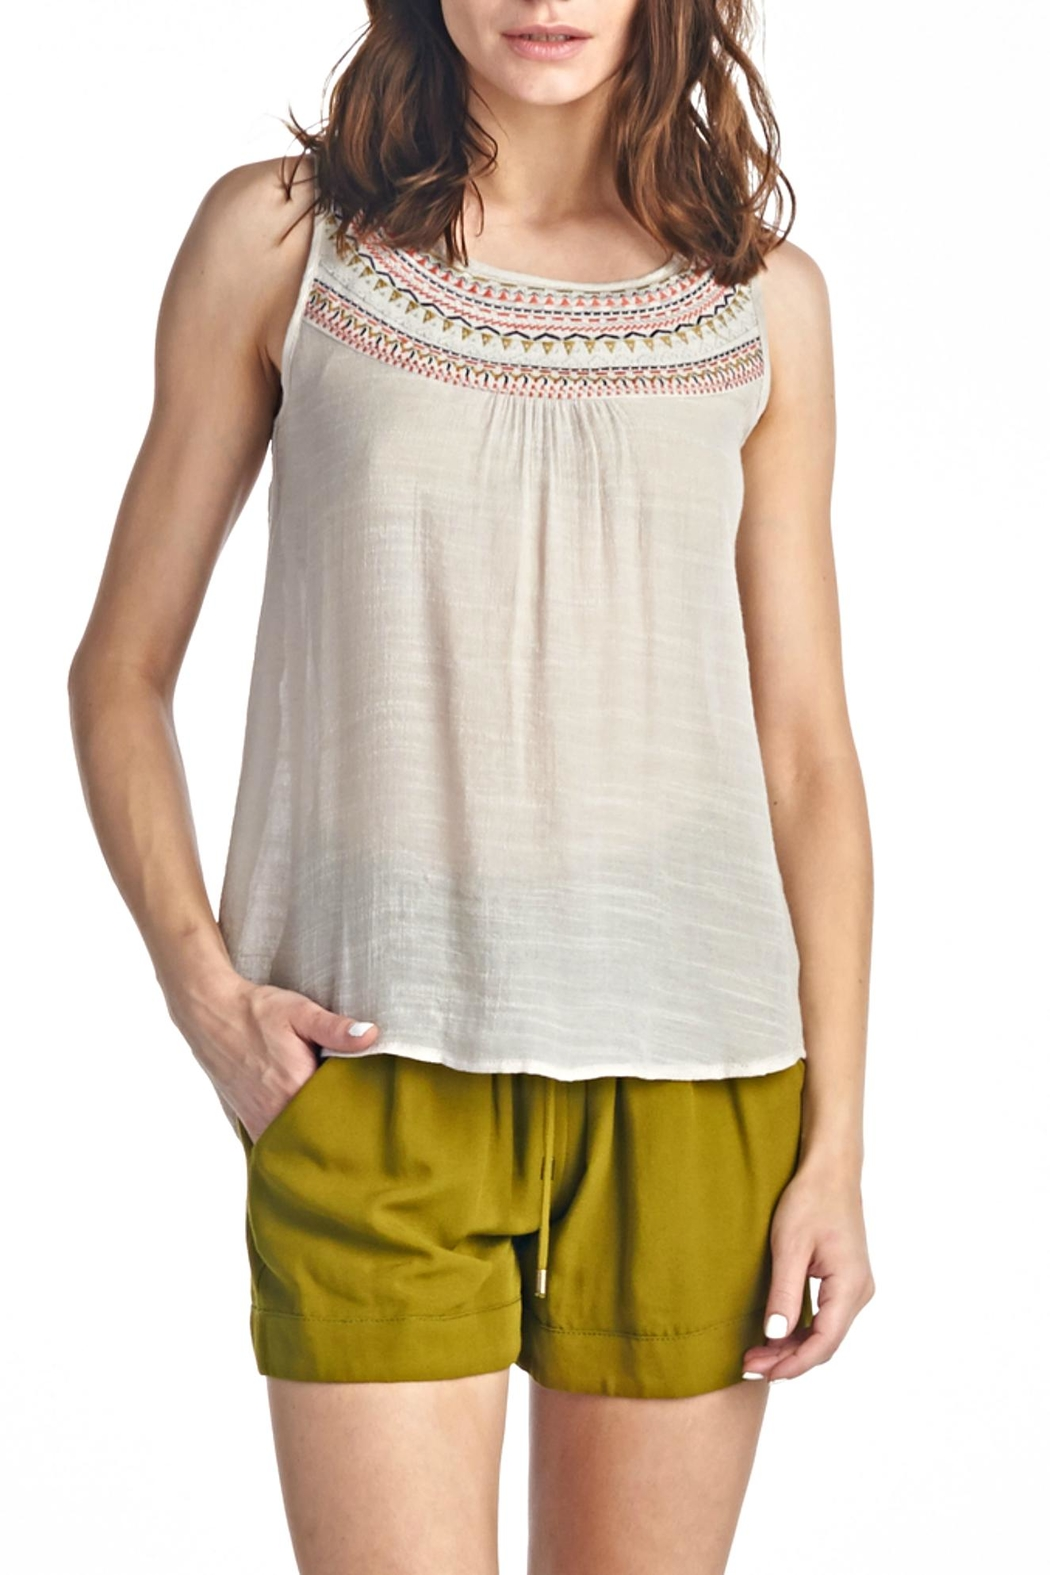 LE SAMPLE Sleeveless Crochet Top - Main Image